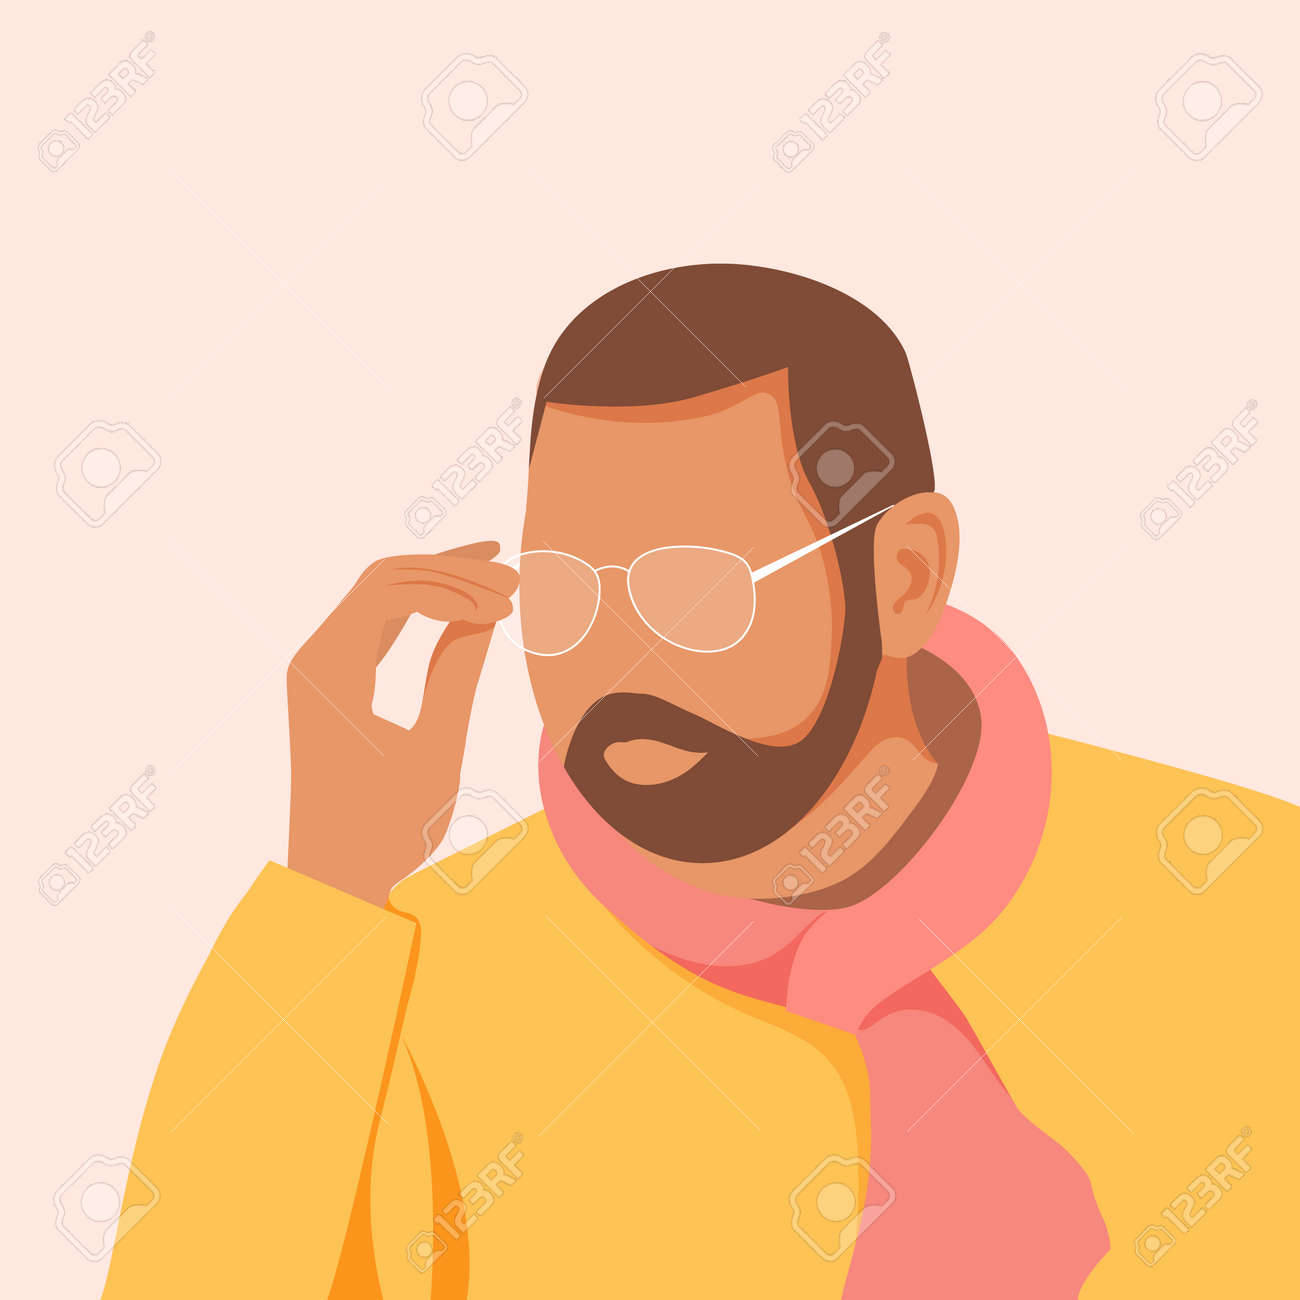 Handsome young man with beard wearing glasses. Guy in orange stylish shirt. Vector illustration - 168765954